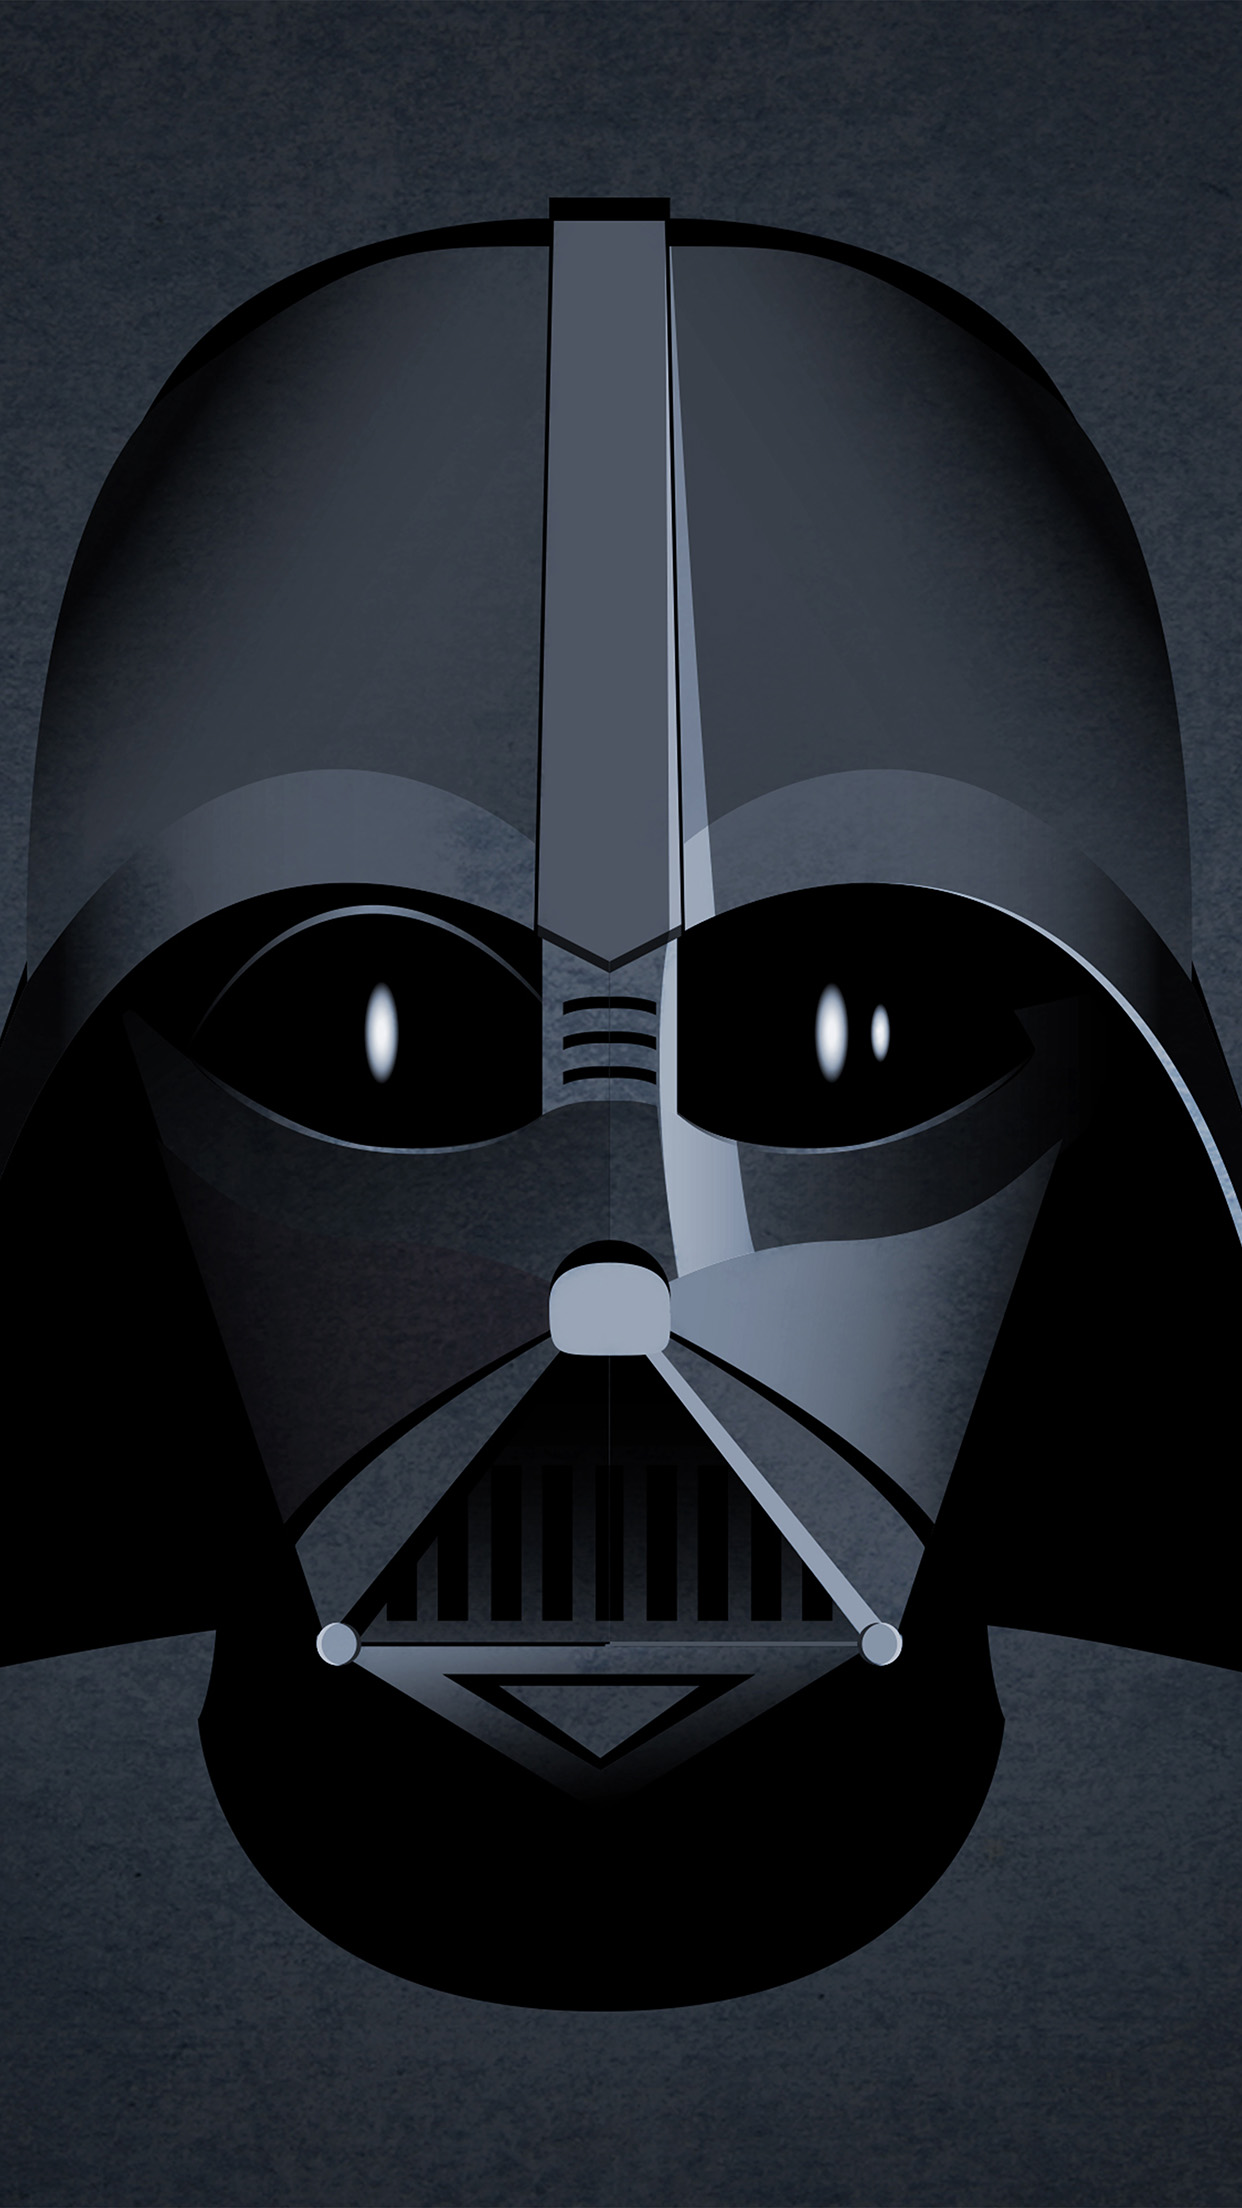 Darth Vader Mask Wallpaper Iphone 2419075 Hd Wallpaper Backgrounds Download